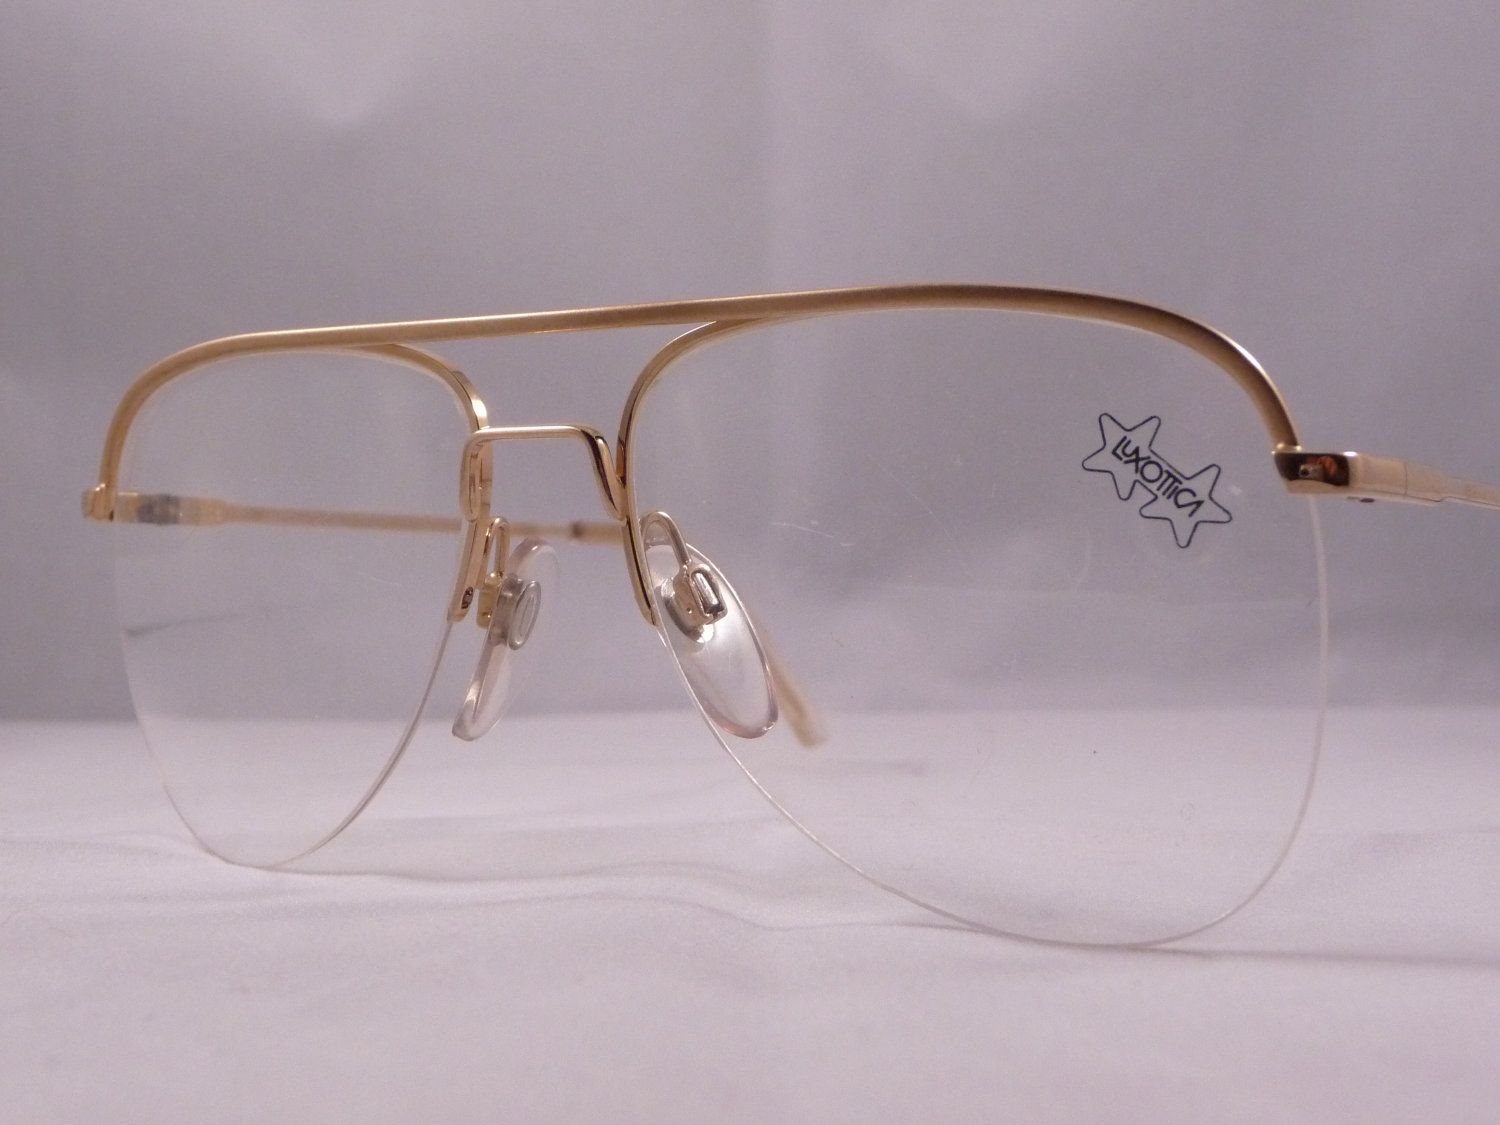 Luxottica Aviator half rimmed eye glasses - Vintage 1980s -  Golden frames, Old Stock - Made in Italy